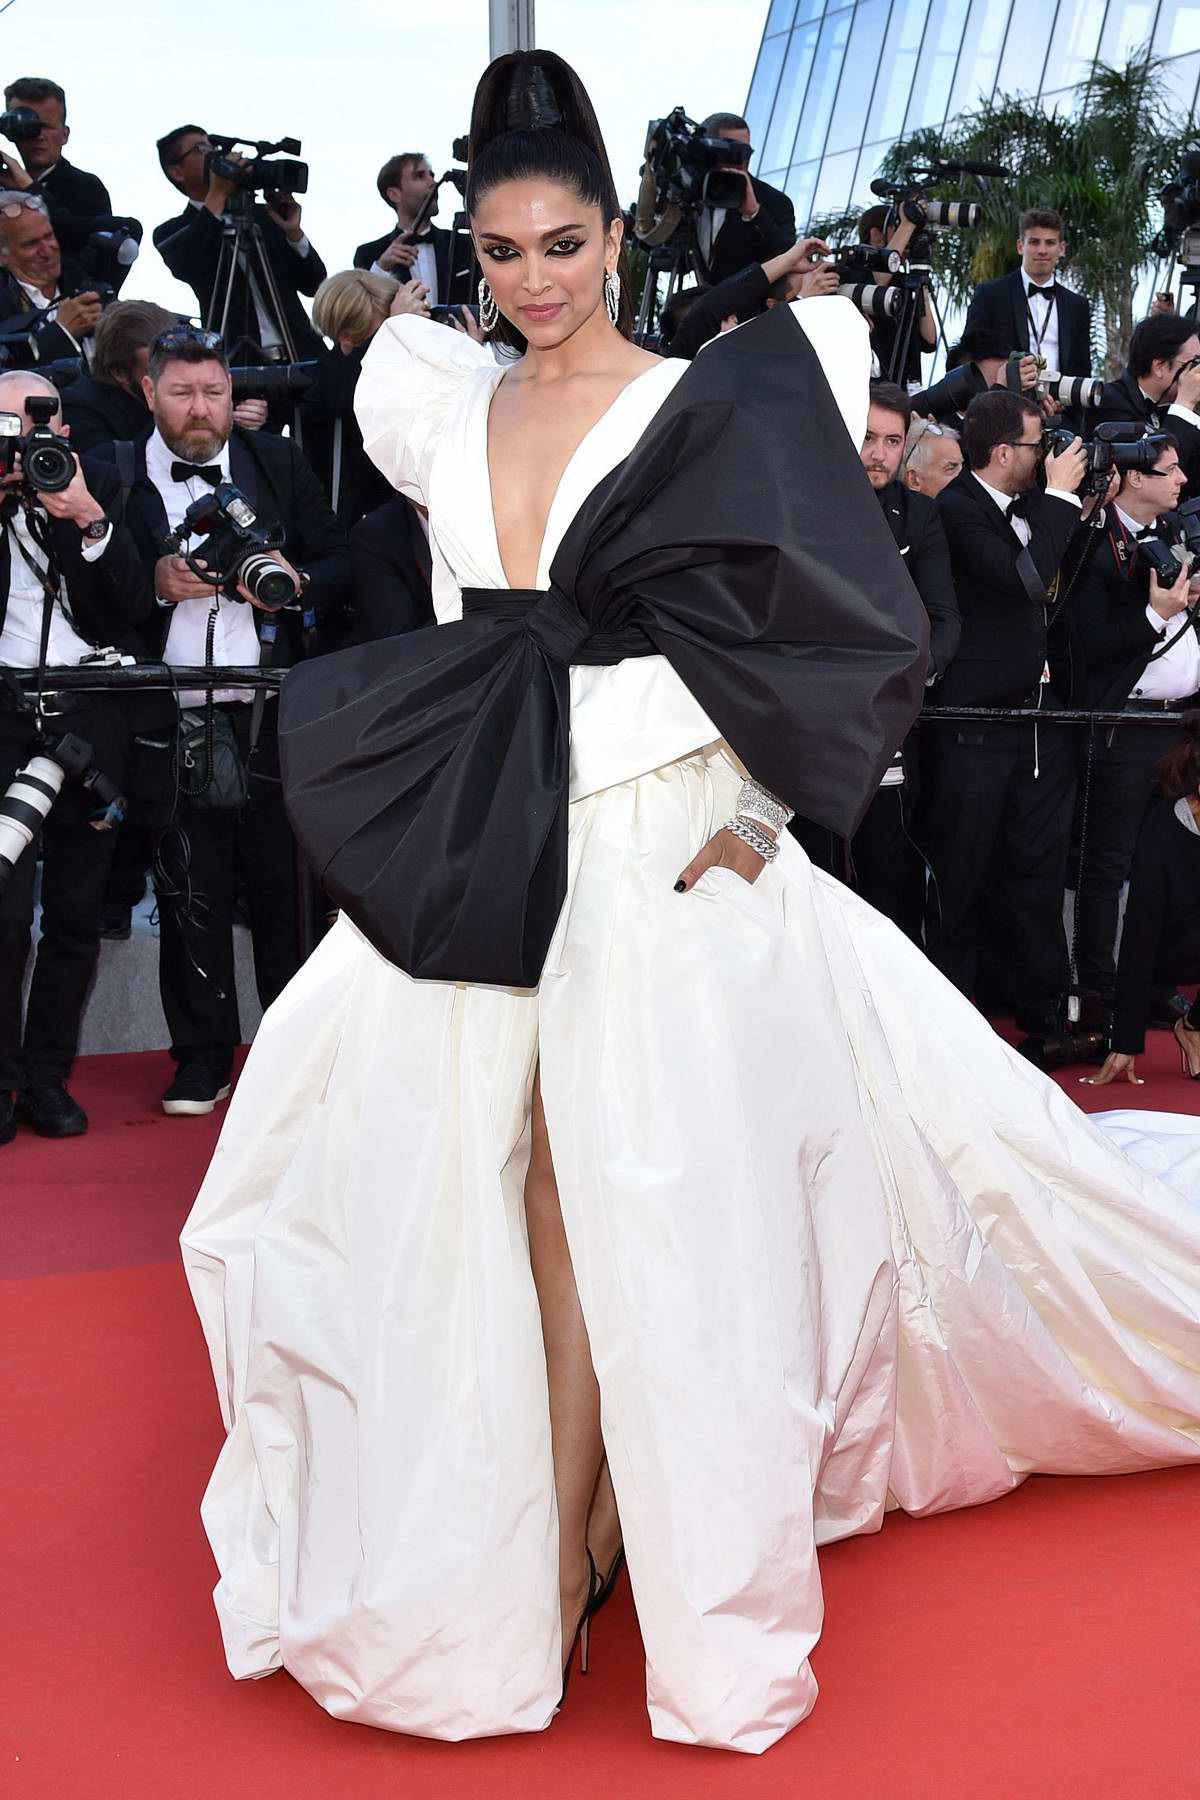 Deepika Padukone attends the screening of 'Rocketman' during the 72nd annual Cannes Film Festival in Cannes, France